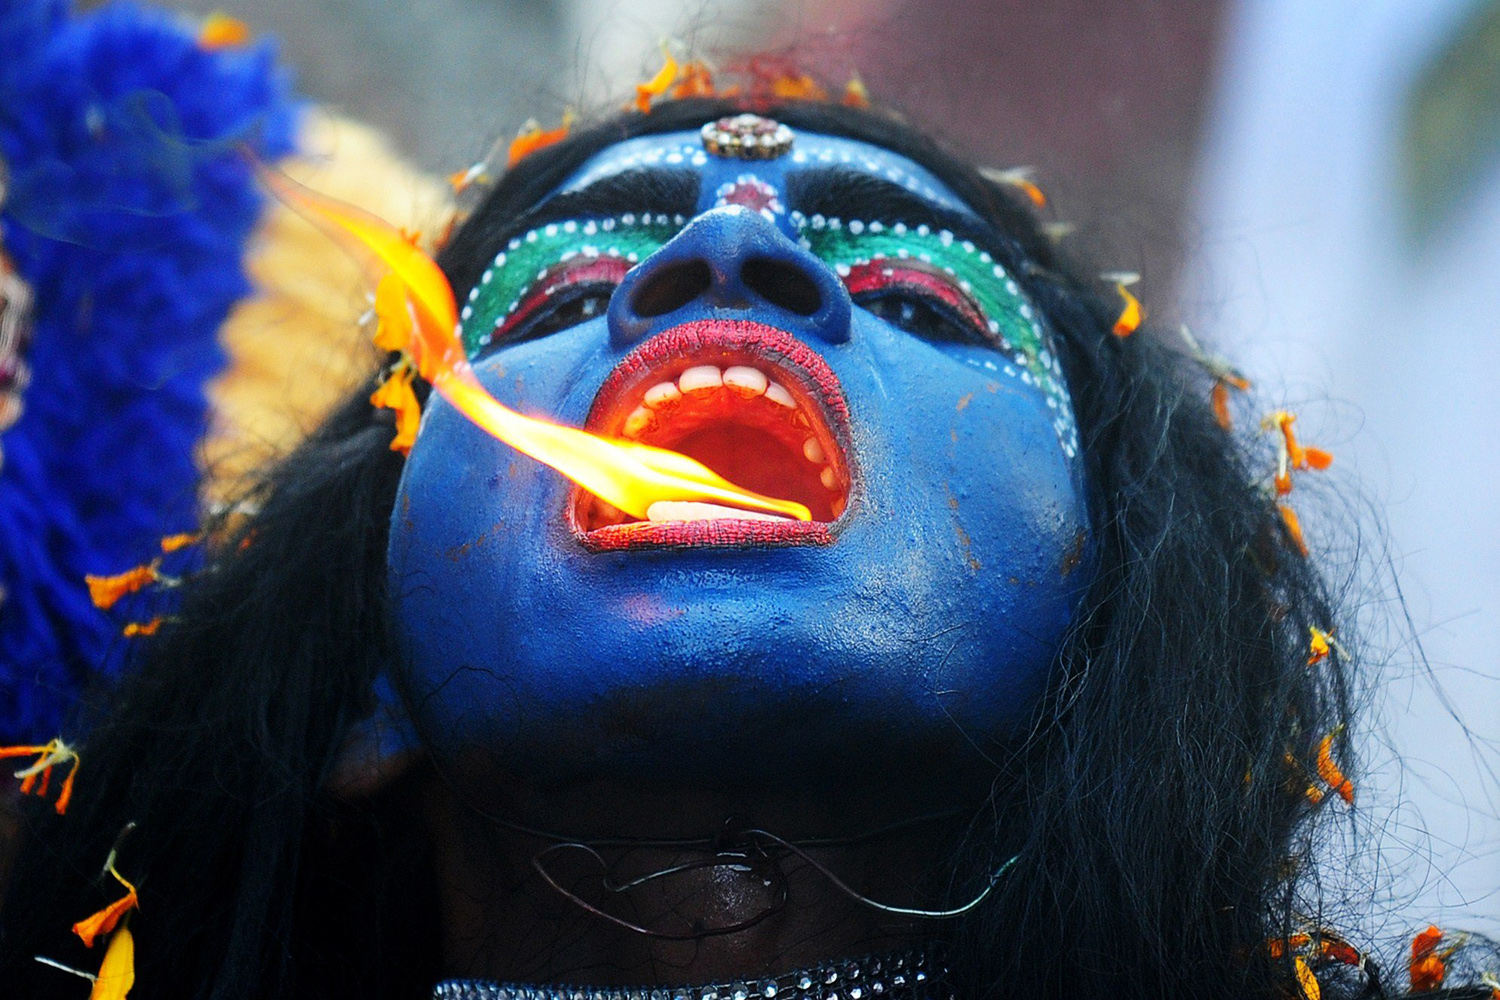 Apr. 8, 2014. An Indian artist dressed as the Hindu goddess Kali participates in a procession to celebrate the Ram Navami festival in Allahabad. Hindu devotees celebrate the festival of Ram Navami, the birth anniversary of Lord Rama, across India, which also marks the end of the nine-day long fasting and Navaratri festival.